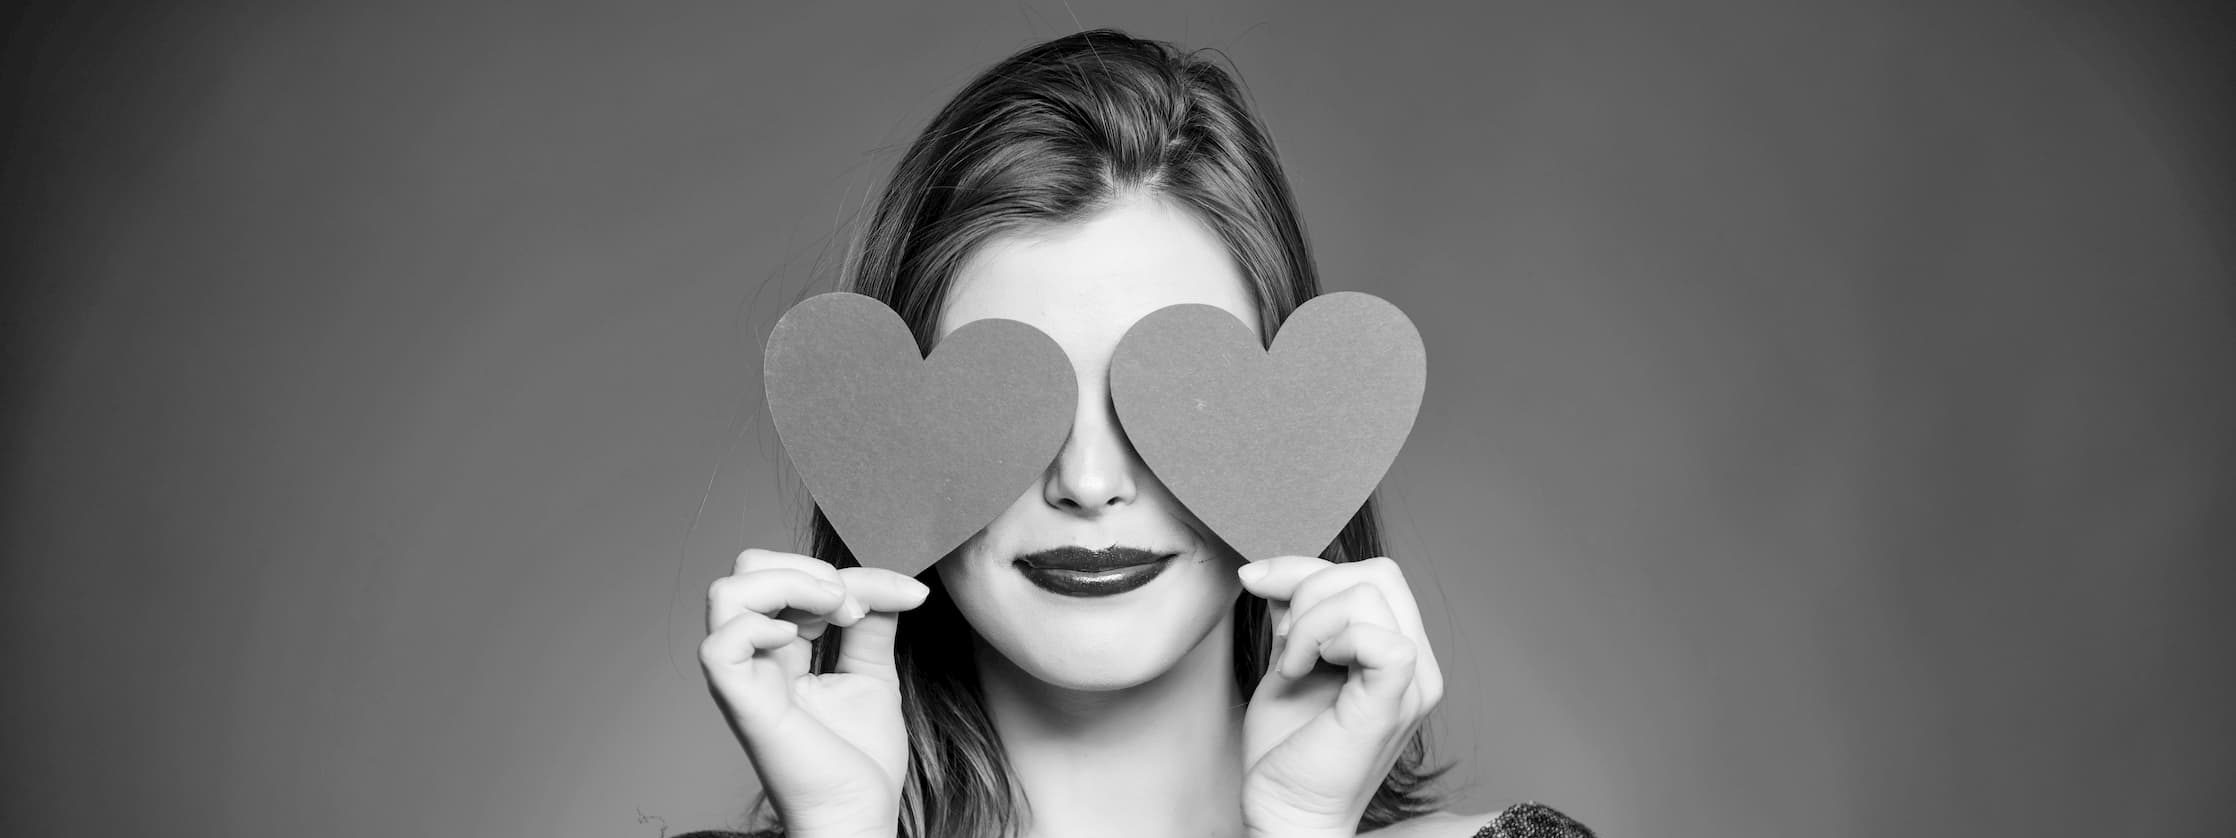 Obsession & Love: What Is The Difference?